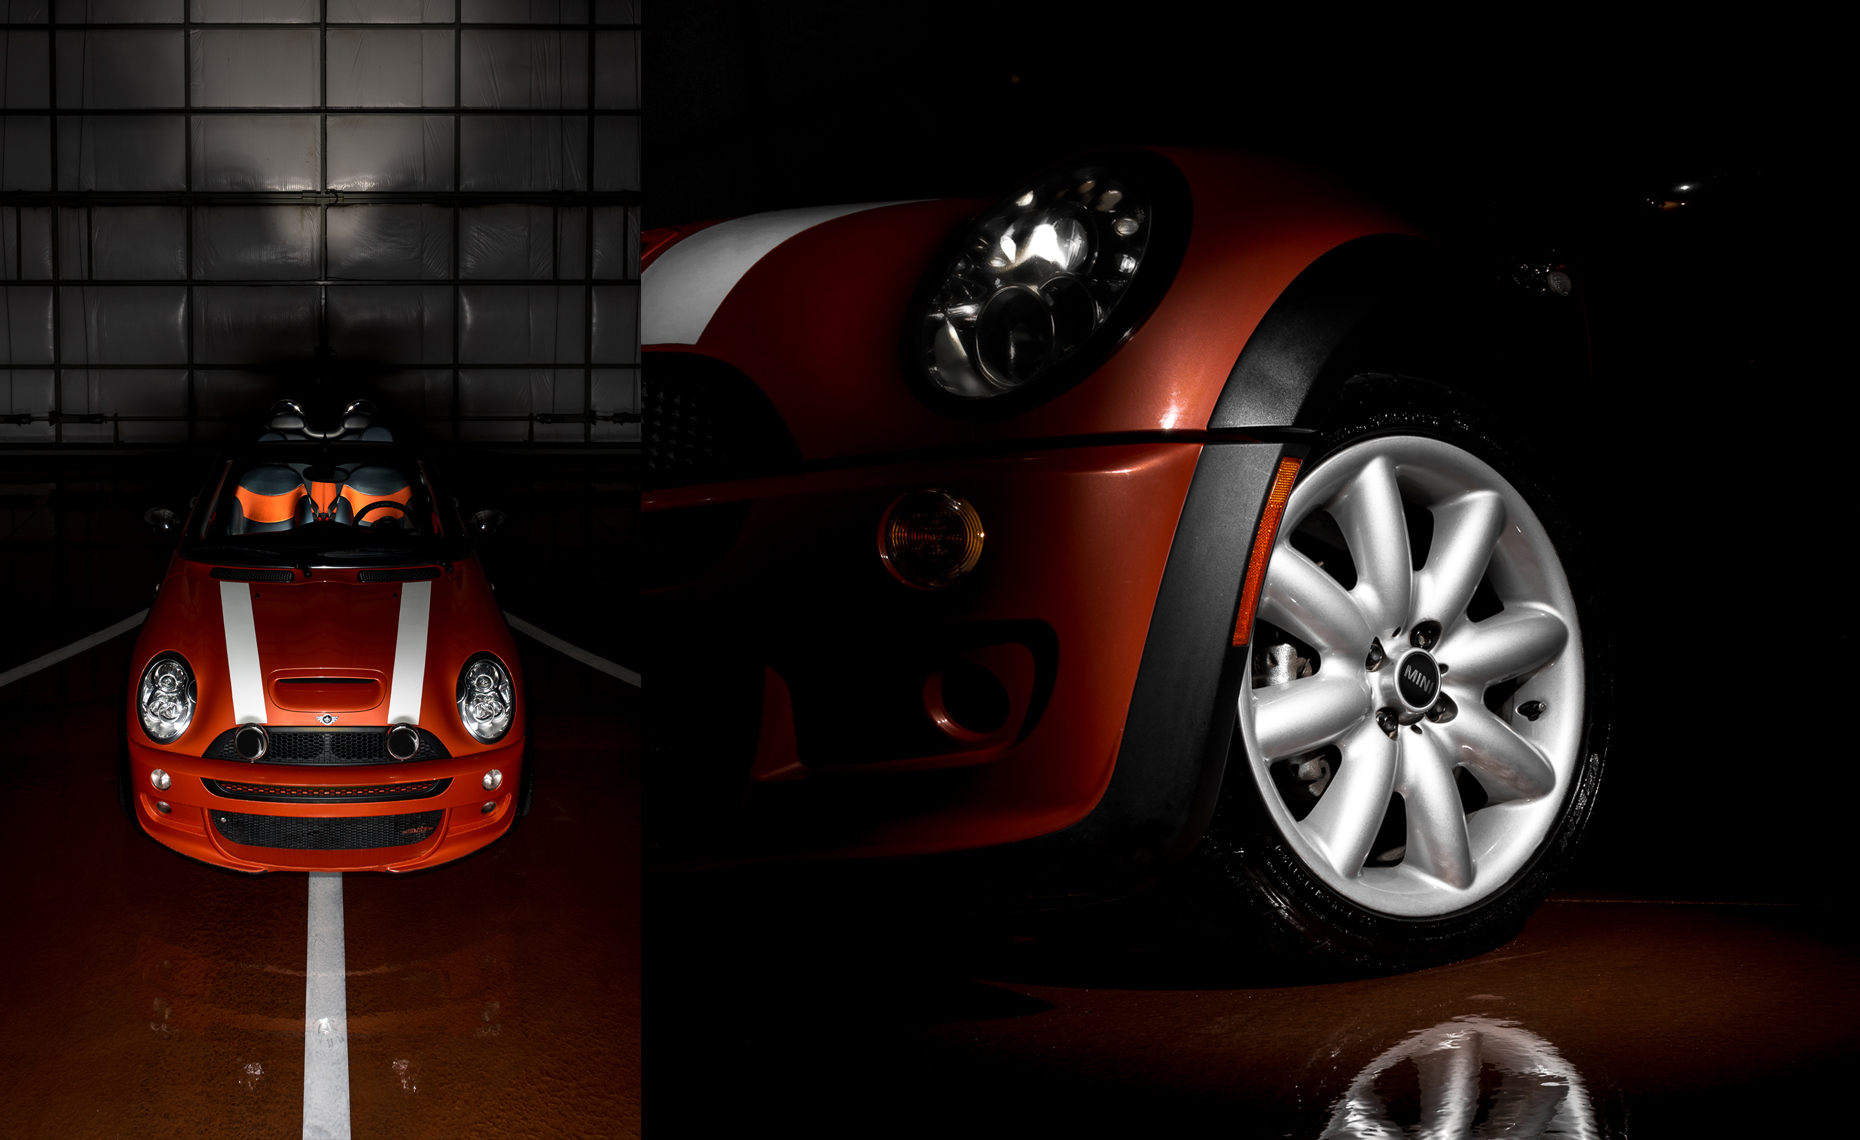 mini cooper bmw car automotive product Sun Peaks Photography